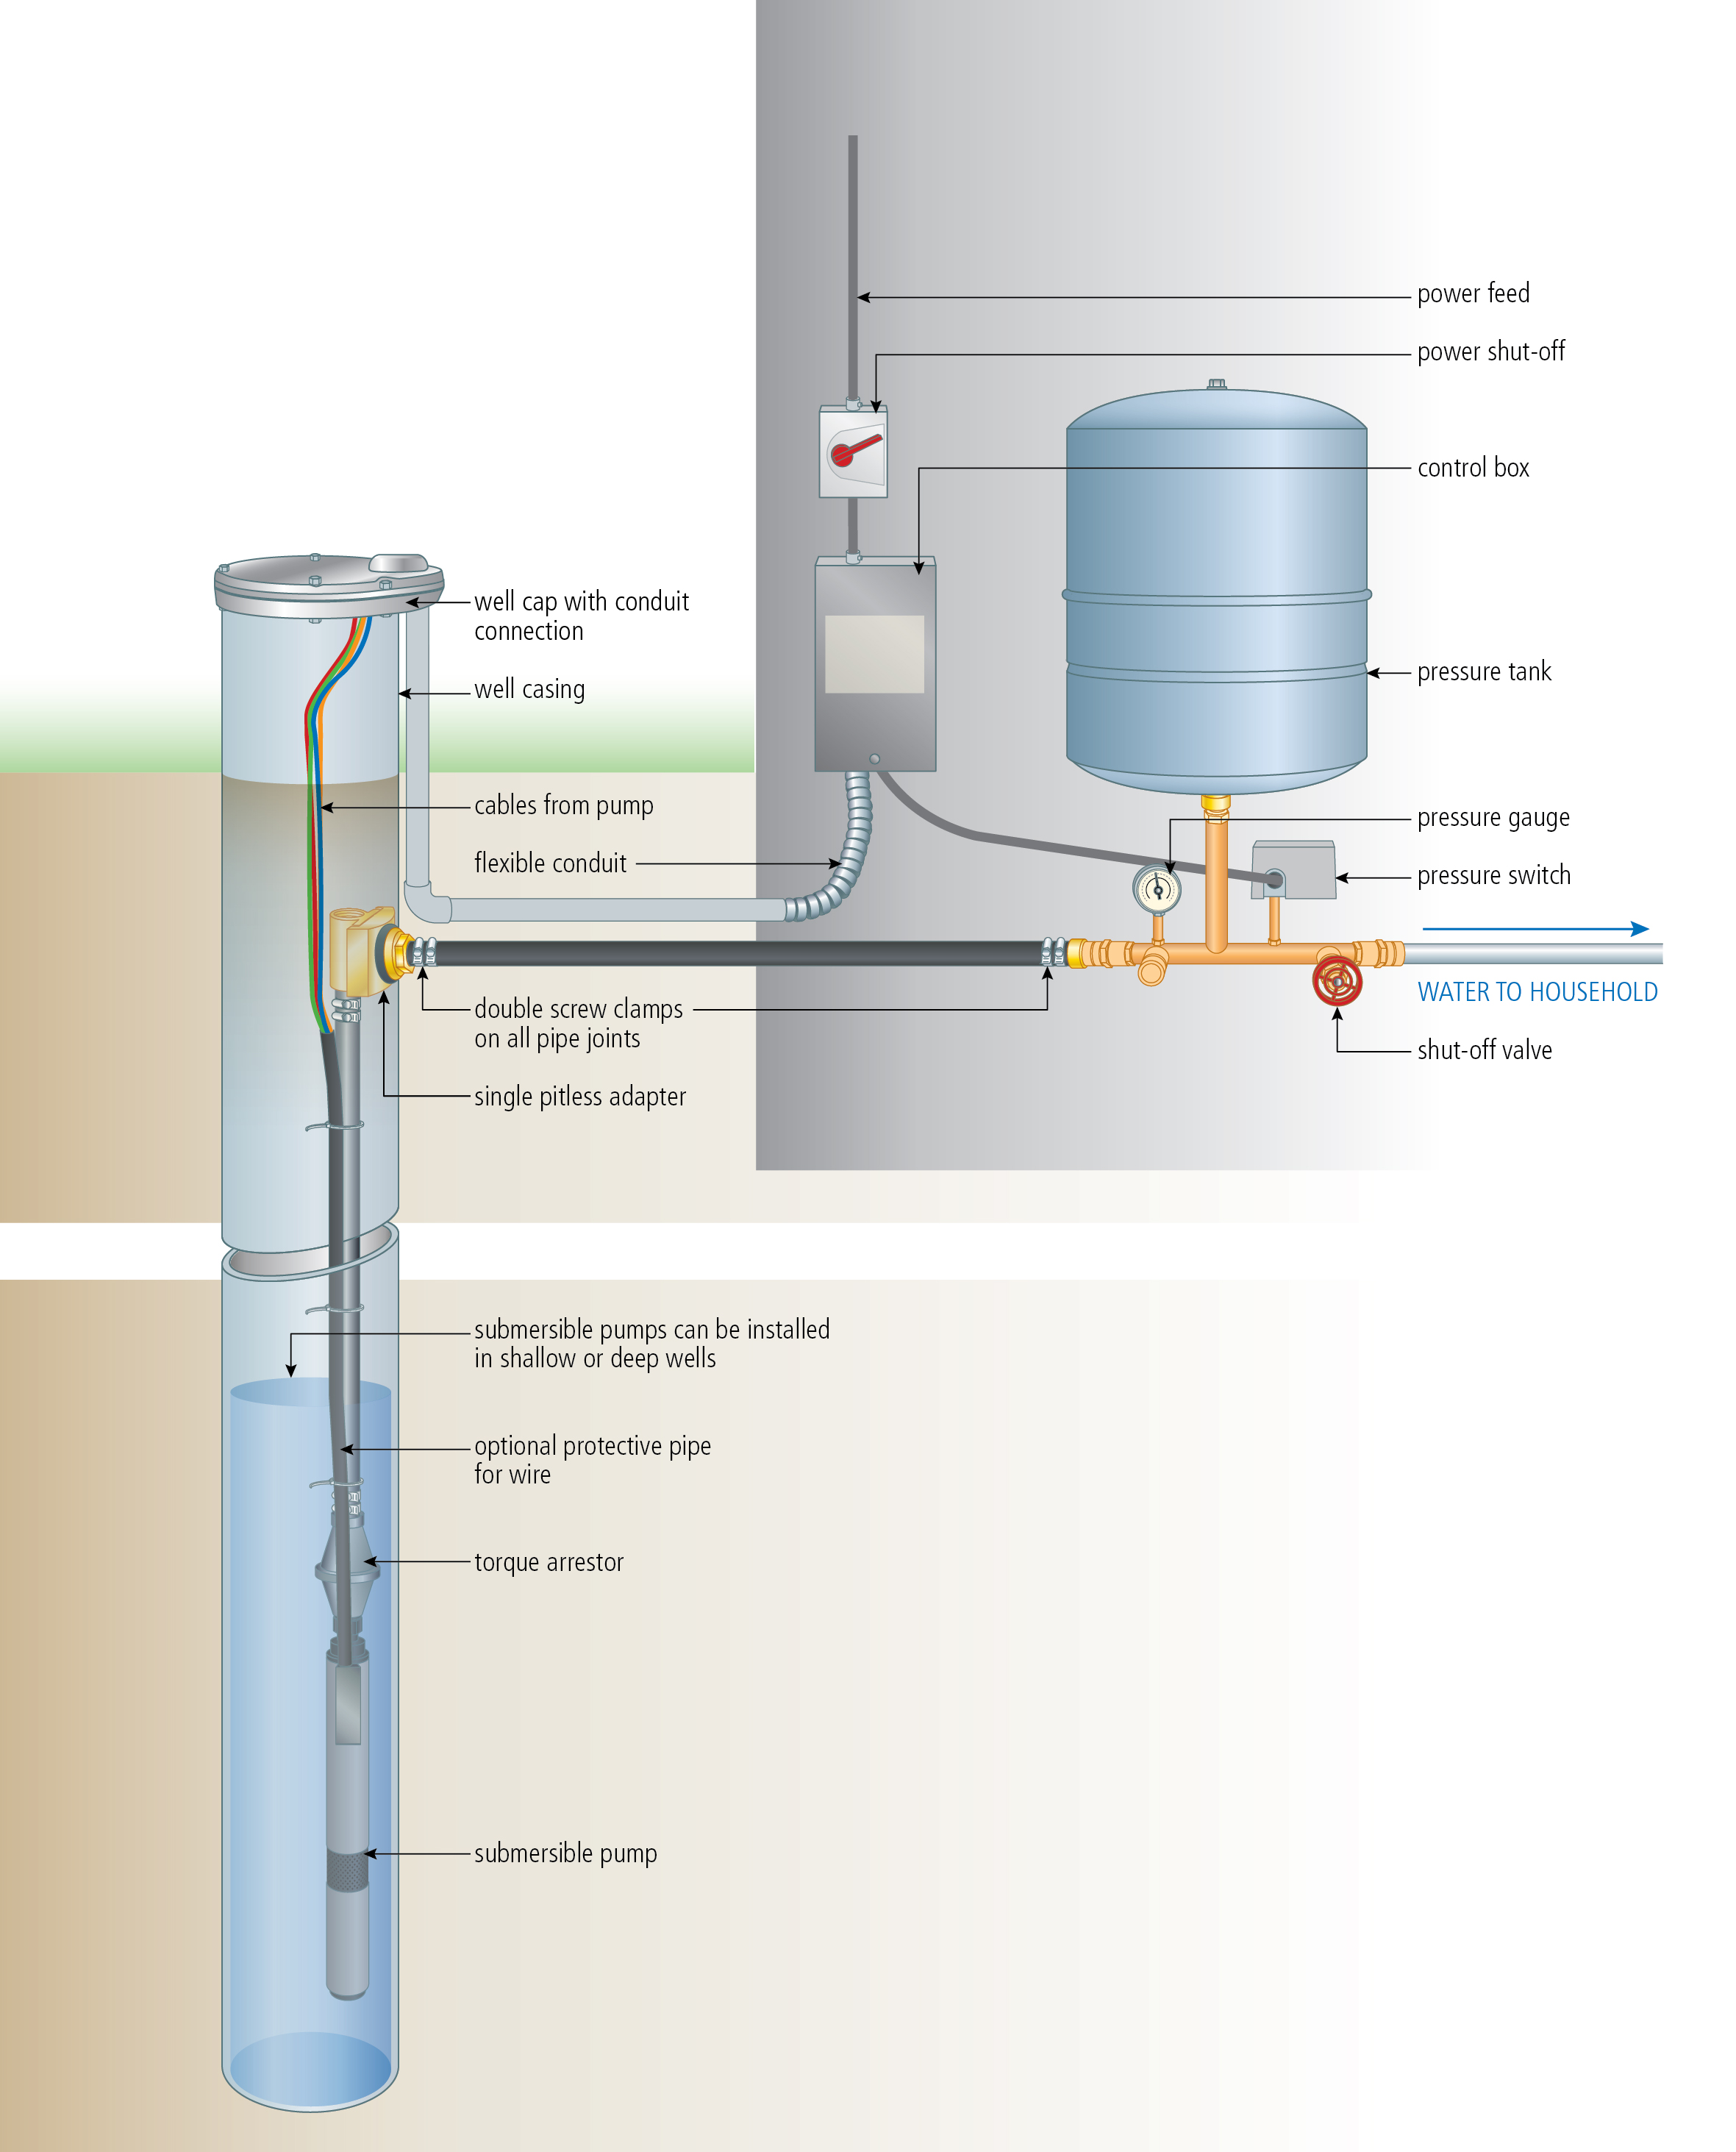 Astounding Install A Submersible Pump 6 Lessons For Doing It Right Wiring Cloud Intelaidewilluminateatxorg